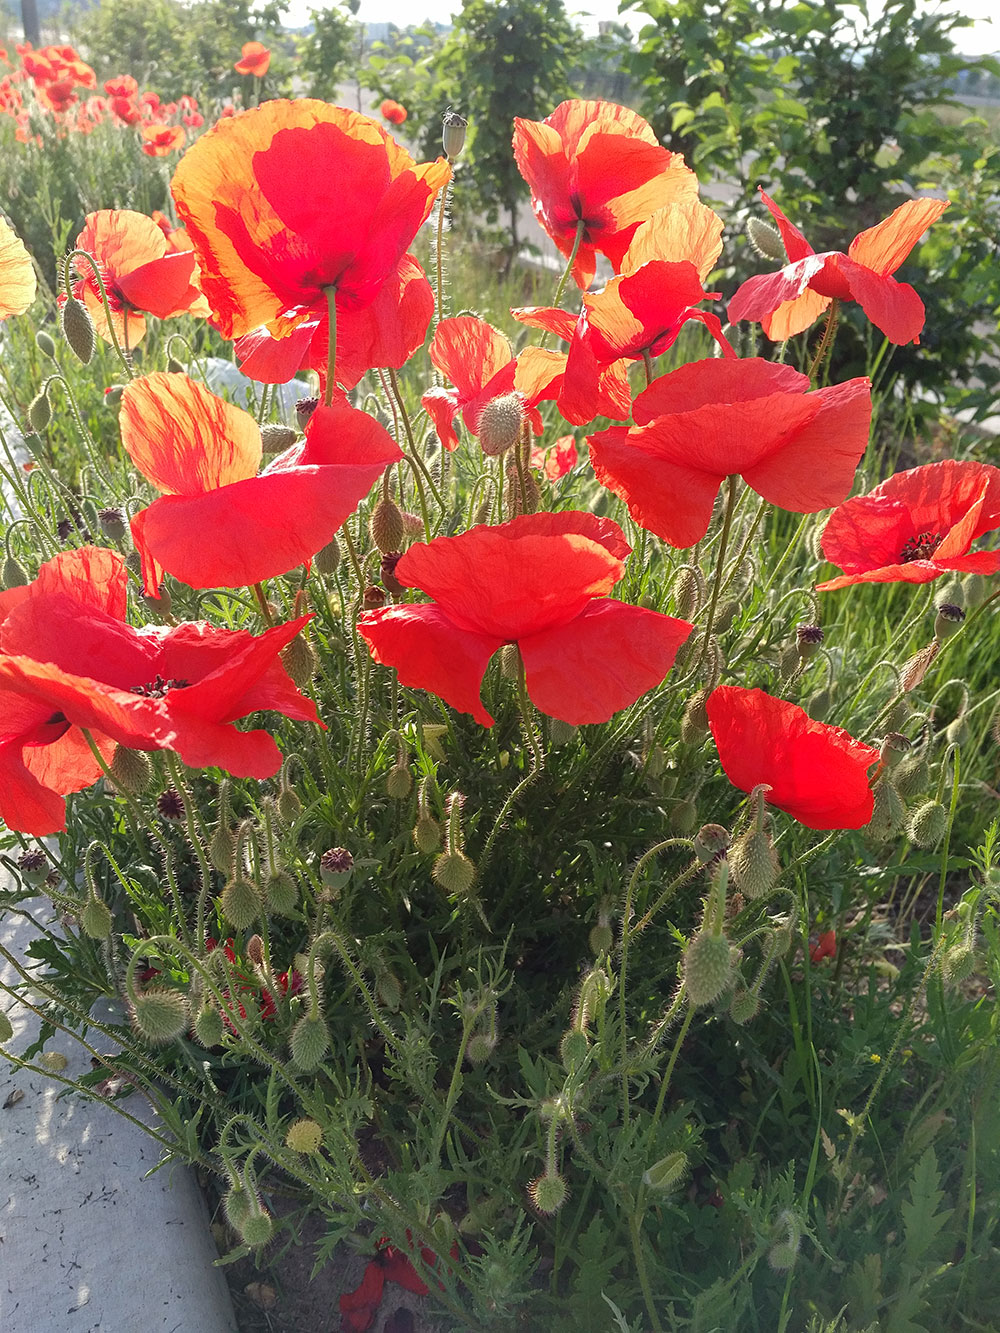 Spotted in northern France — poppies, a symbol of the First World War, are in bloom everywhere. Together with the graveyards in this part of France, they're a poignant reminder of all those very young men who lost their lives in battle.